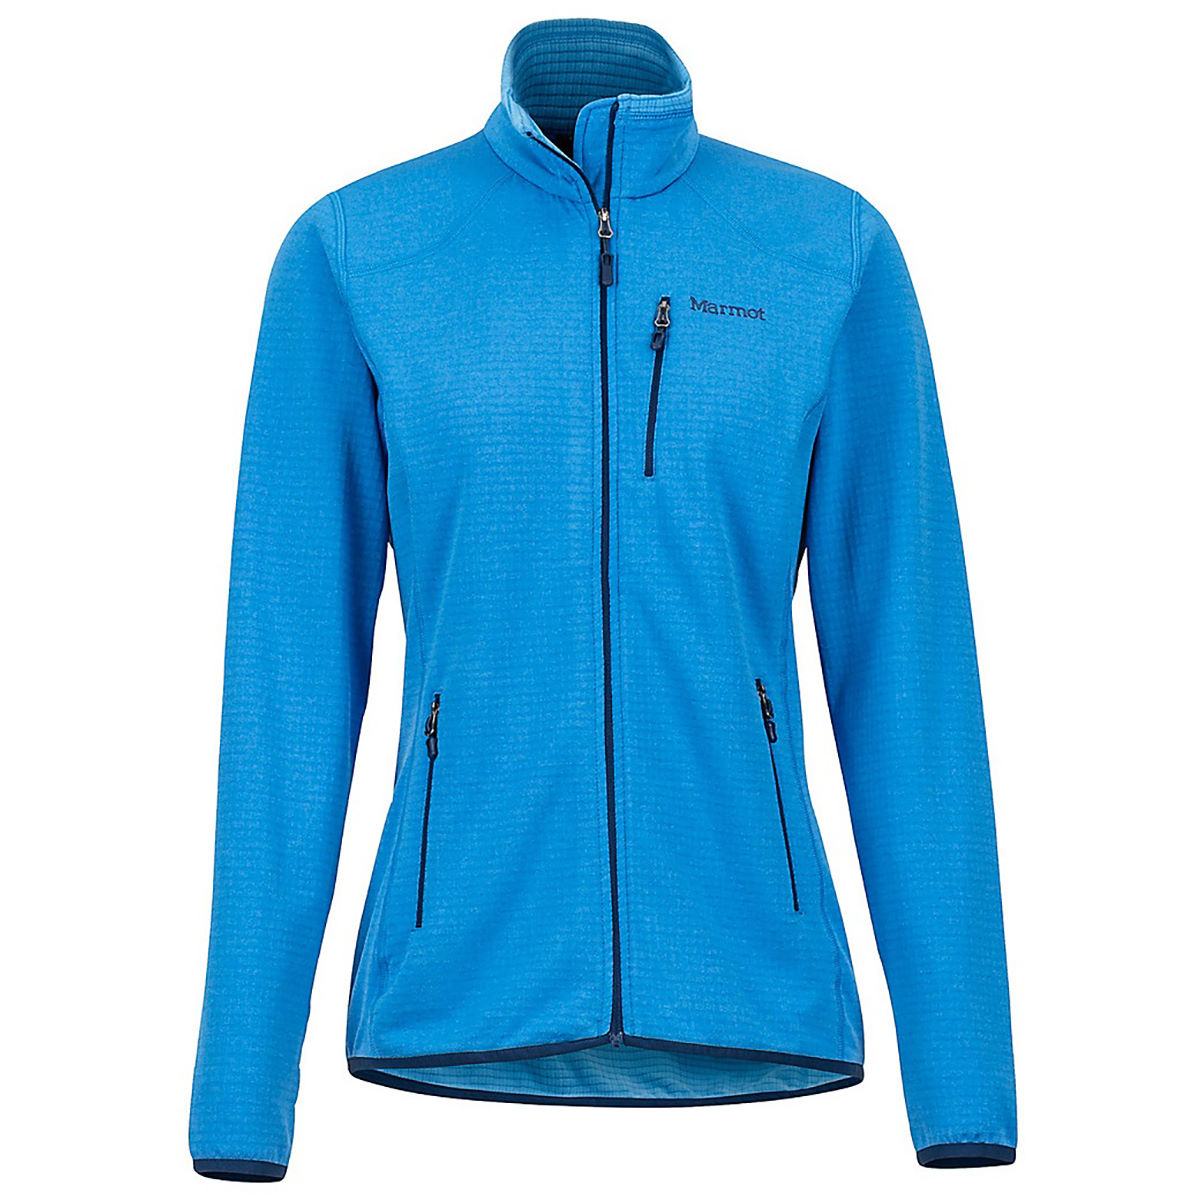 Marmot Marmot Womens Preon Jacket   Jackets